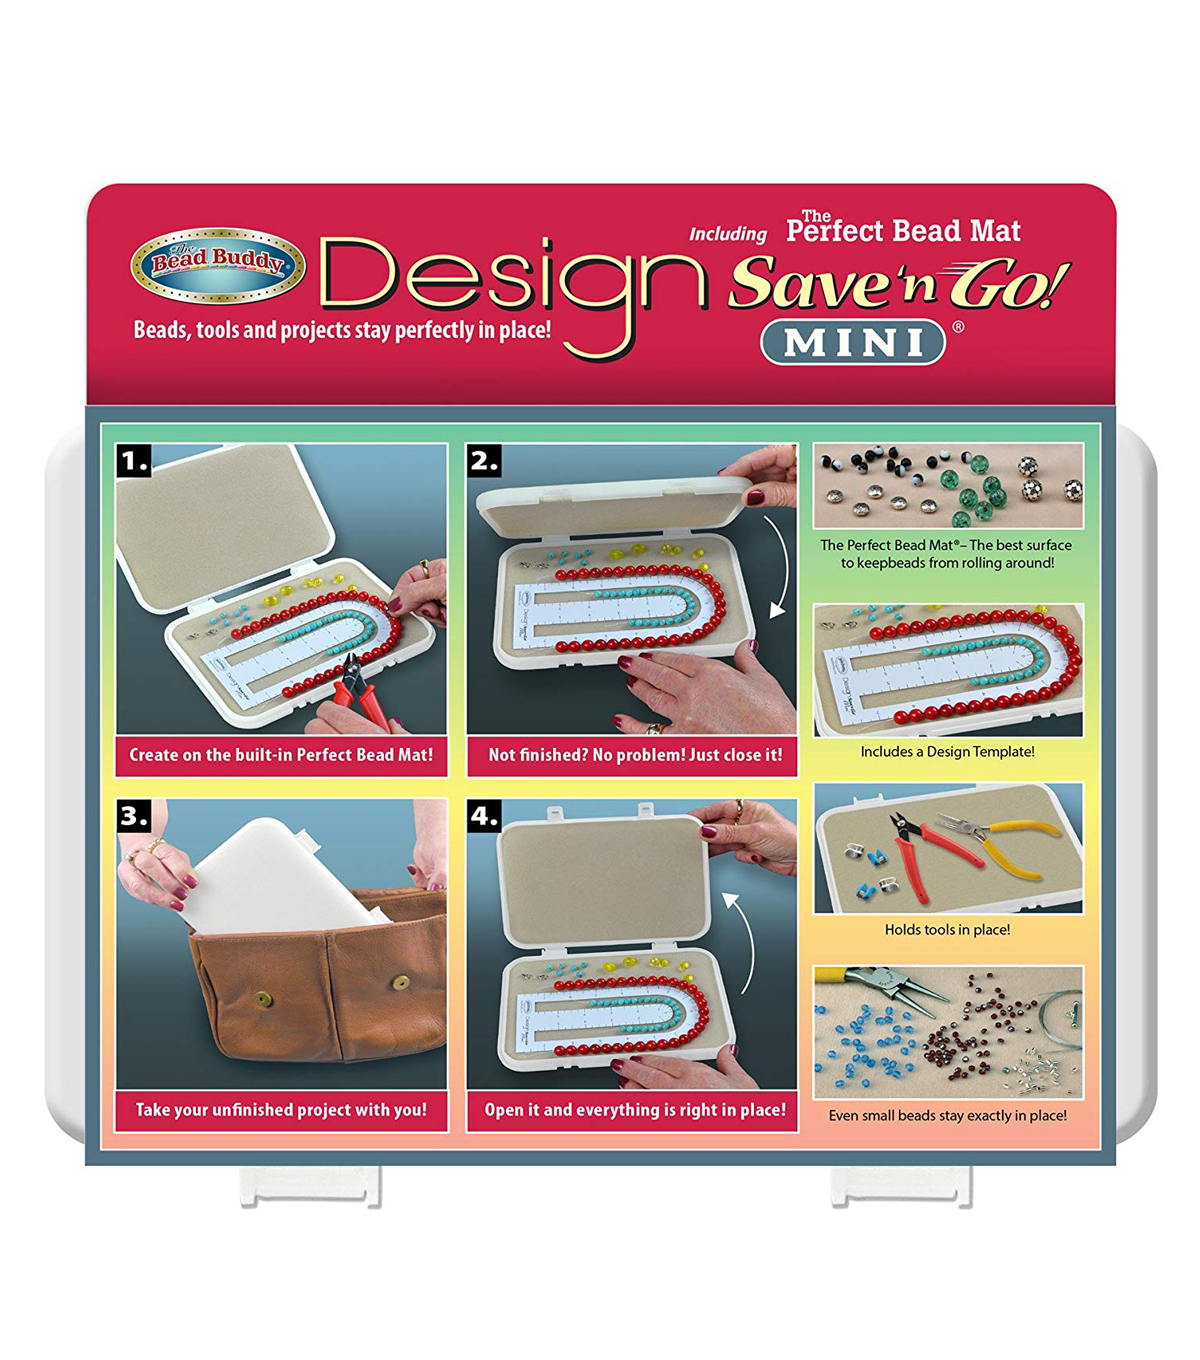 The Bead Buddy Design Mini Save\u0027n Go Bead Mat